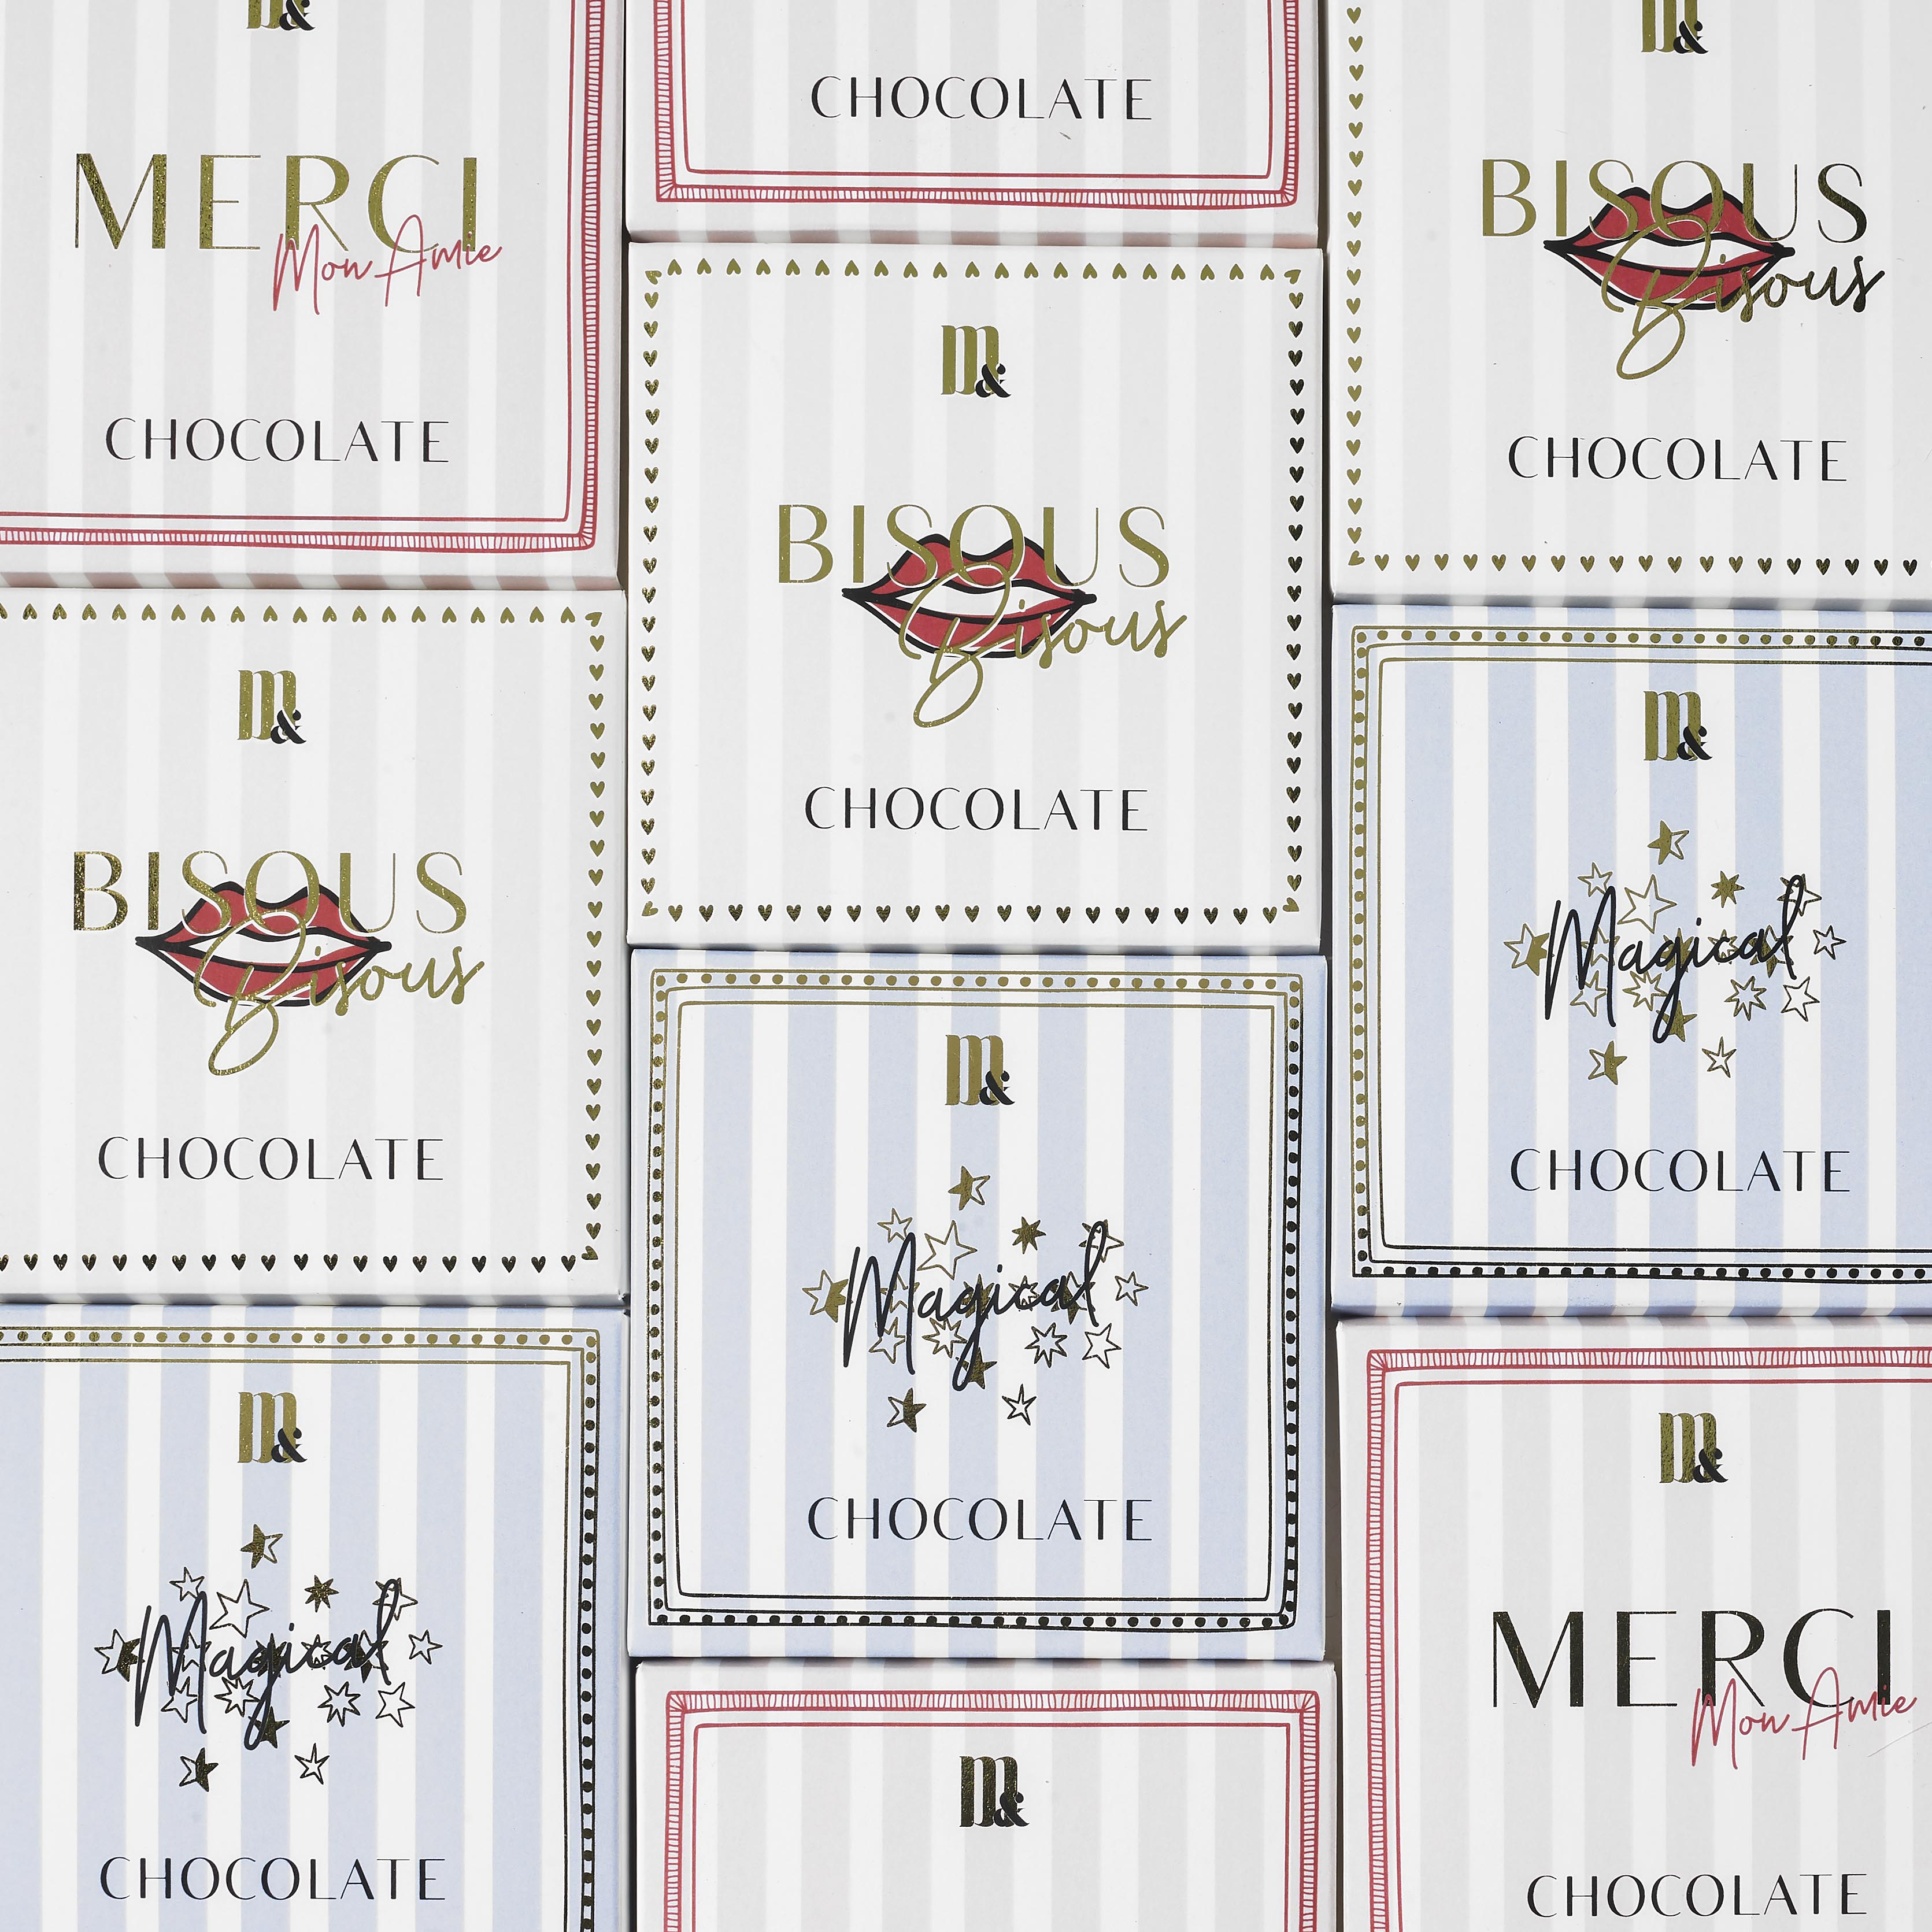 Me&Mats SS 2019 choco collection